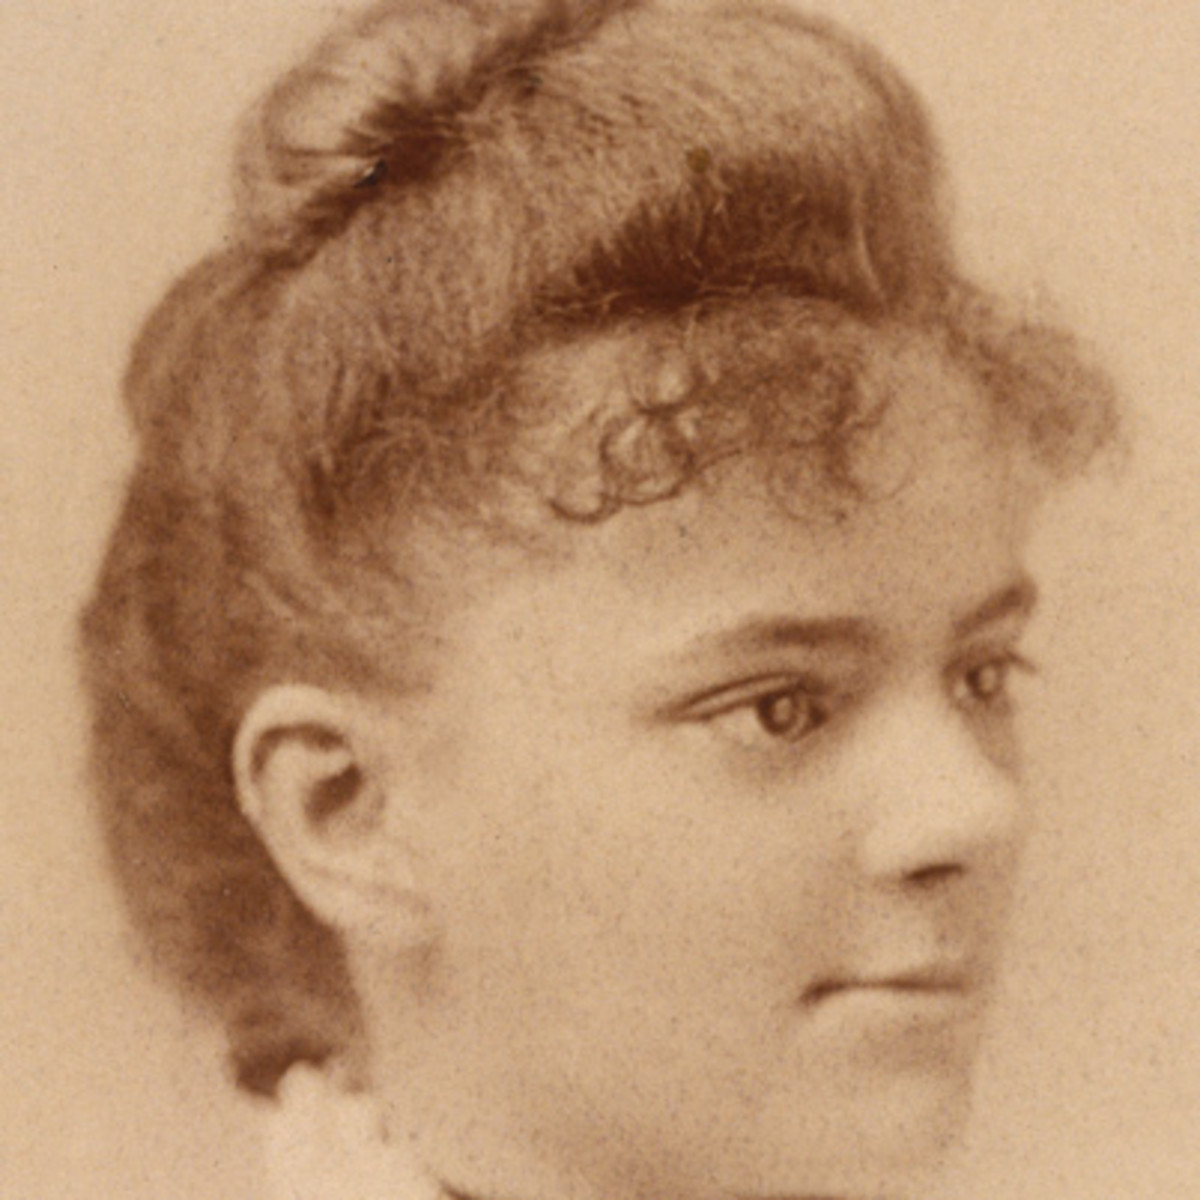 why dr elizabeth blackwell is a hero Elizabeth blackwell's family was very active in the movements to abolish slavery and enfranchise women elizabeth's dying friend motivated her to become the 1st woman in america to earn a medical degree.